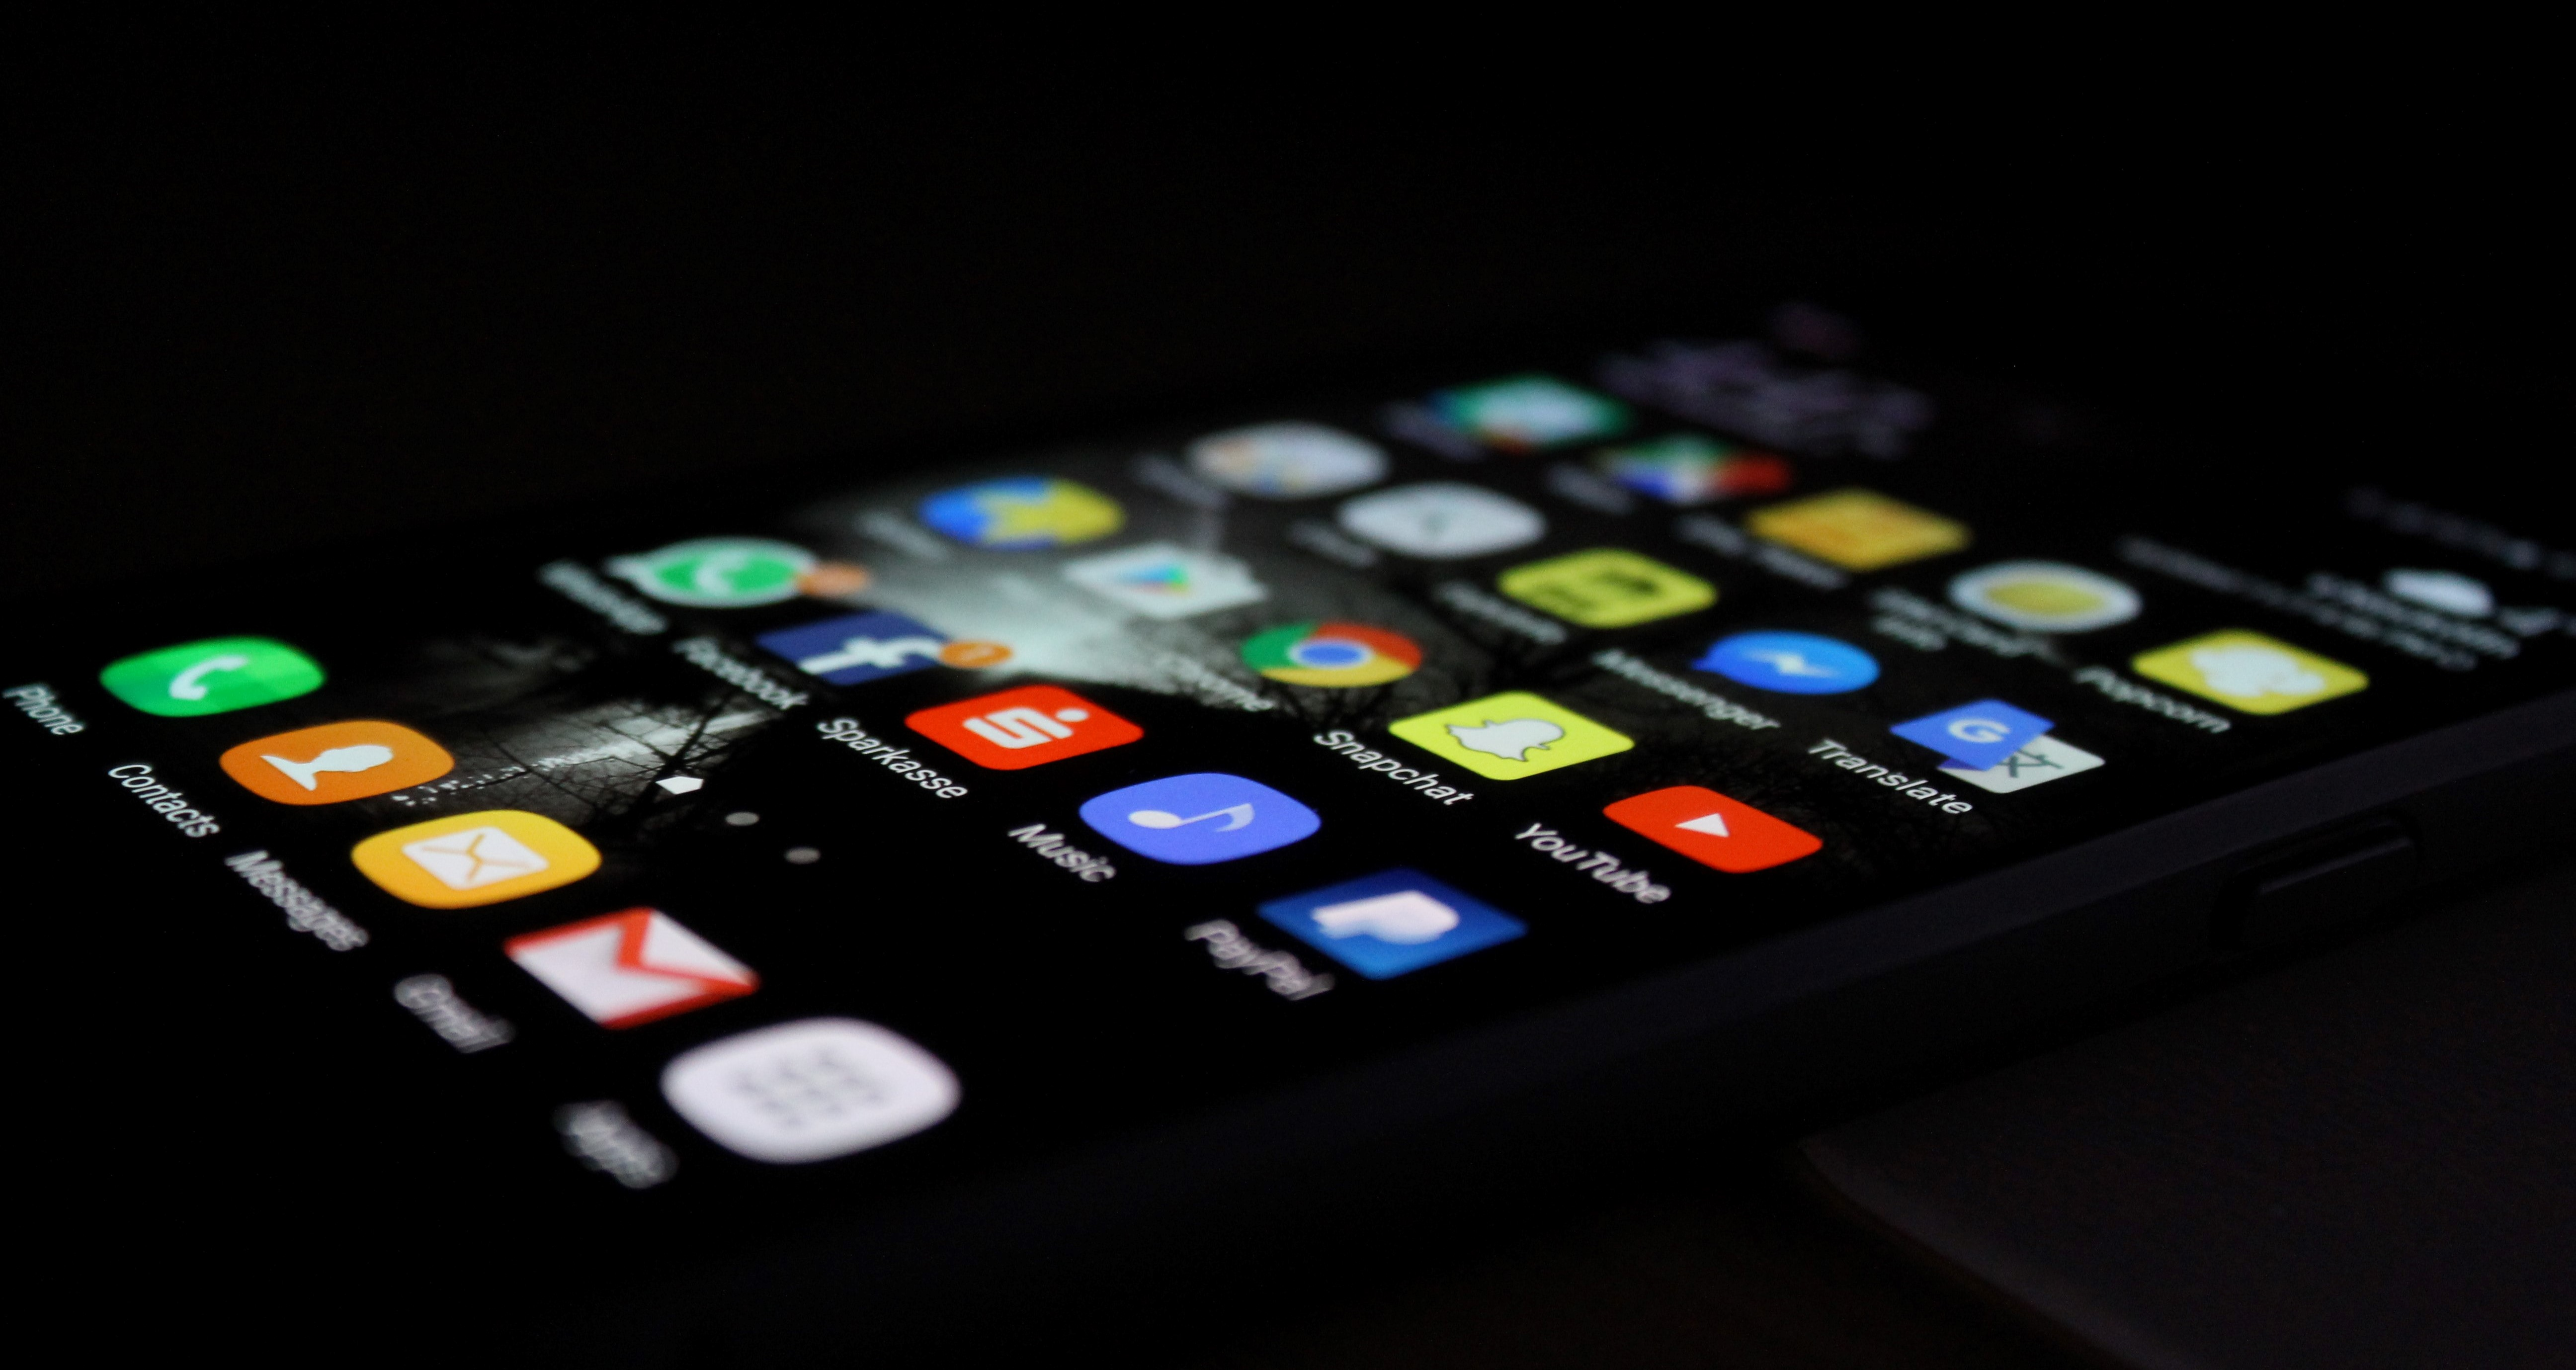 Brands Need To Consider an App-First Approach